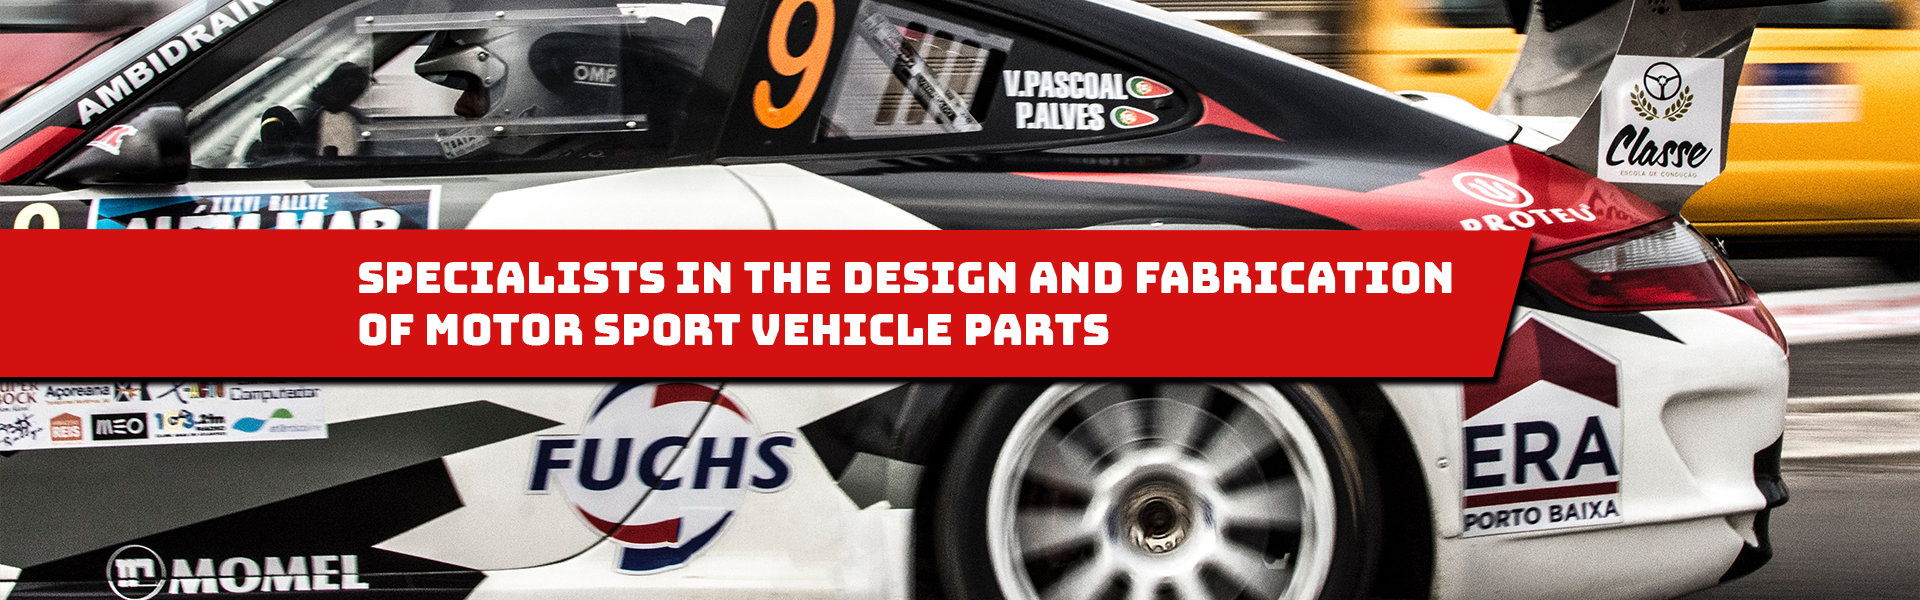 Specialists in motor sport vehicle parts